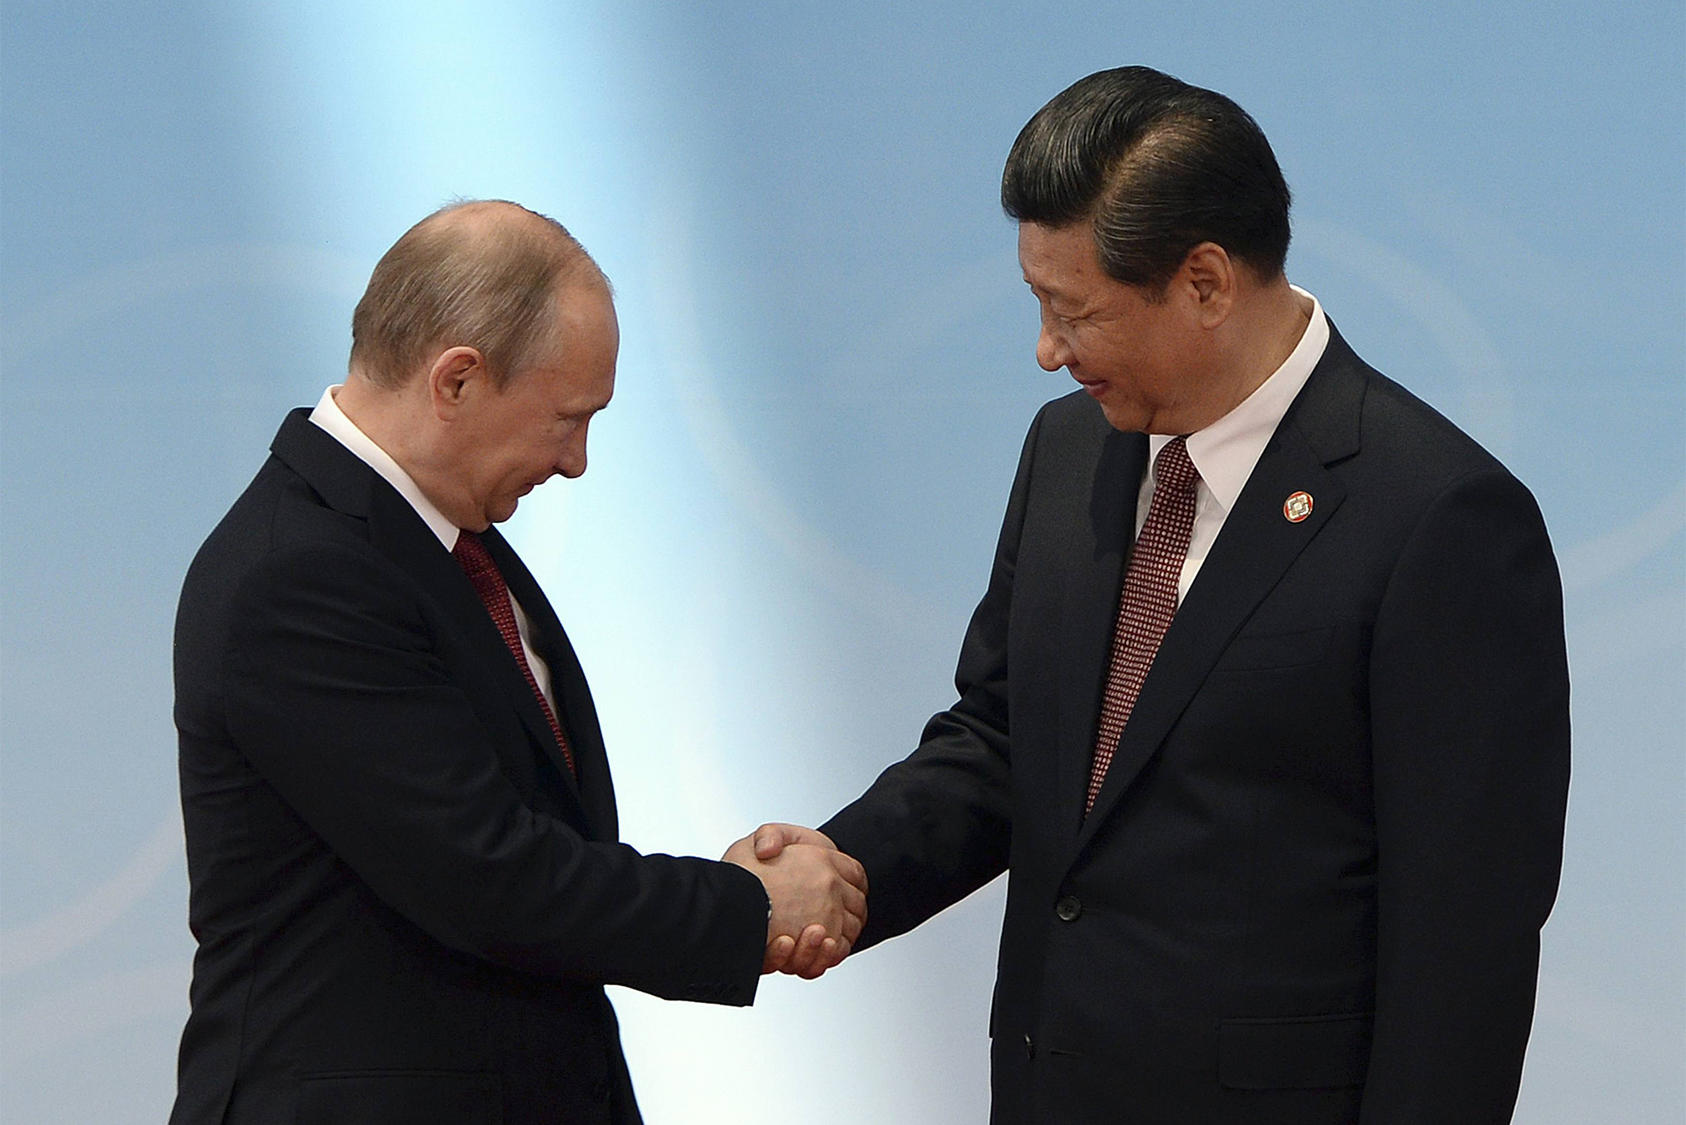 Russian President Vladimir Putin shakes hands with Chinese President Xi Jinping before a summit in Shanghai, May 21, 2014. (Mark Ralston/Pool via The New York Times)